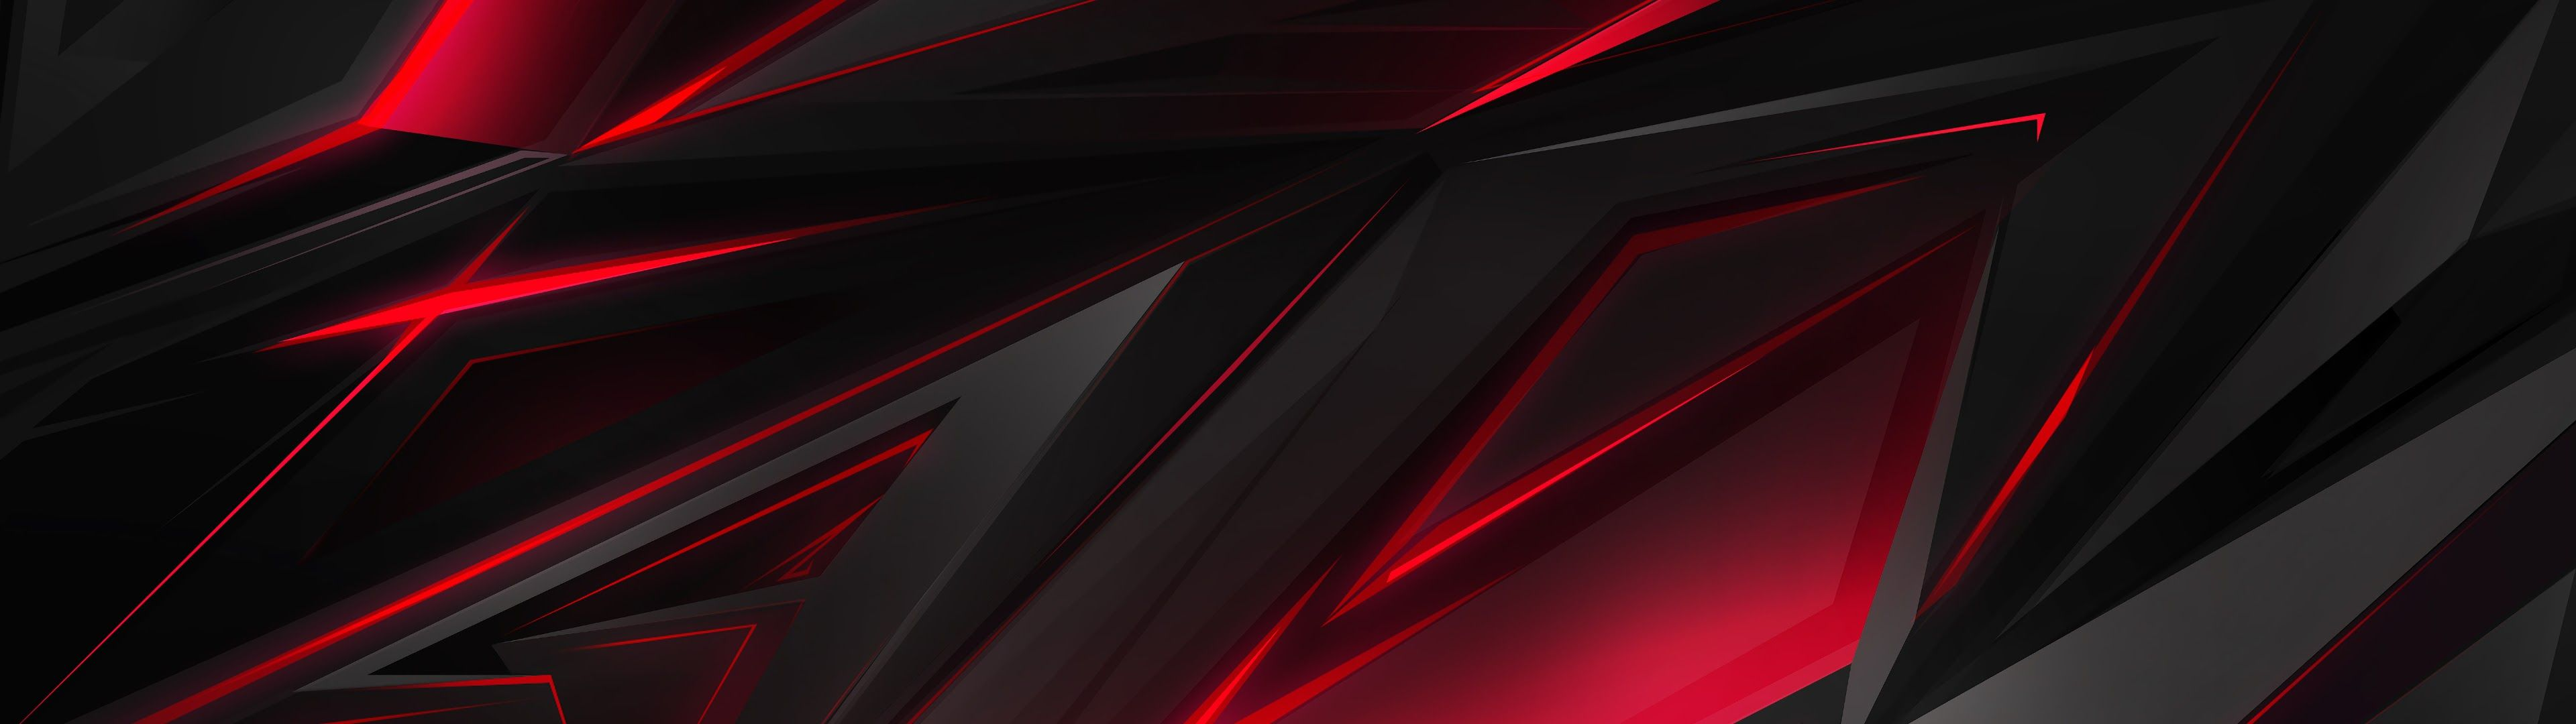 3840x1080 Red Wallpapers Top Free 3840x1080 Red Backgrounds Wallpaperaccess